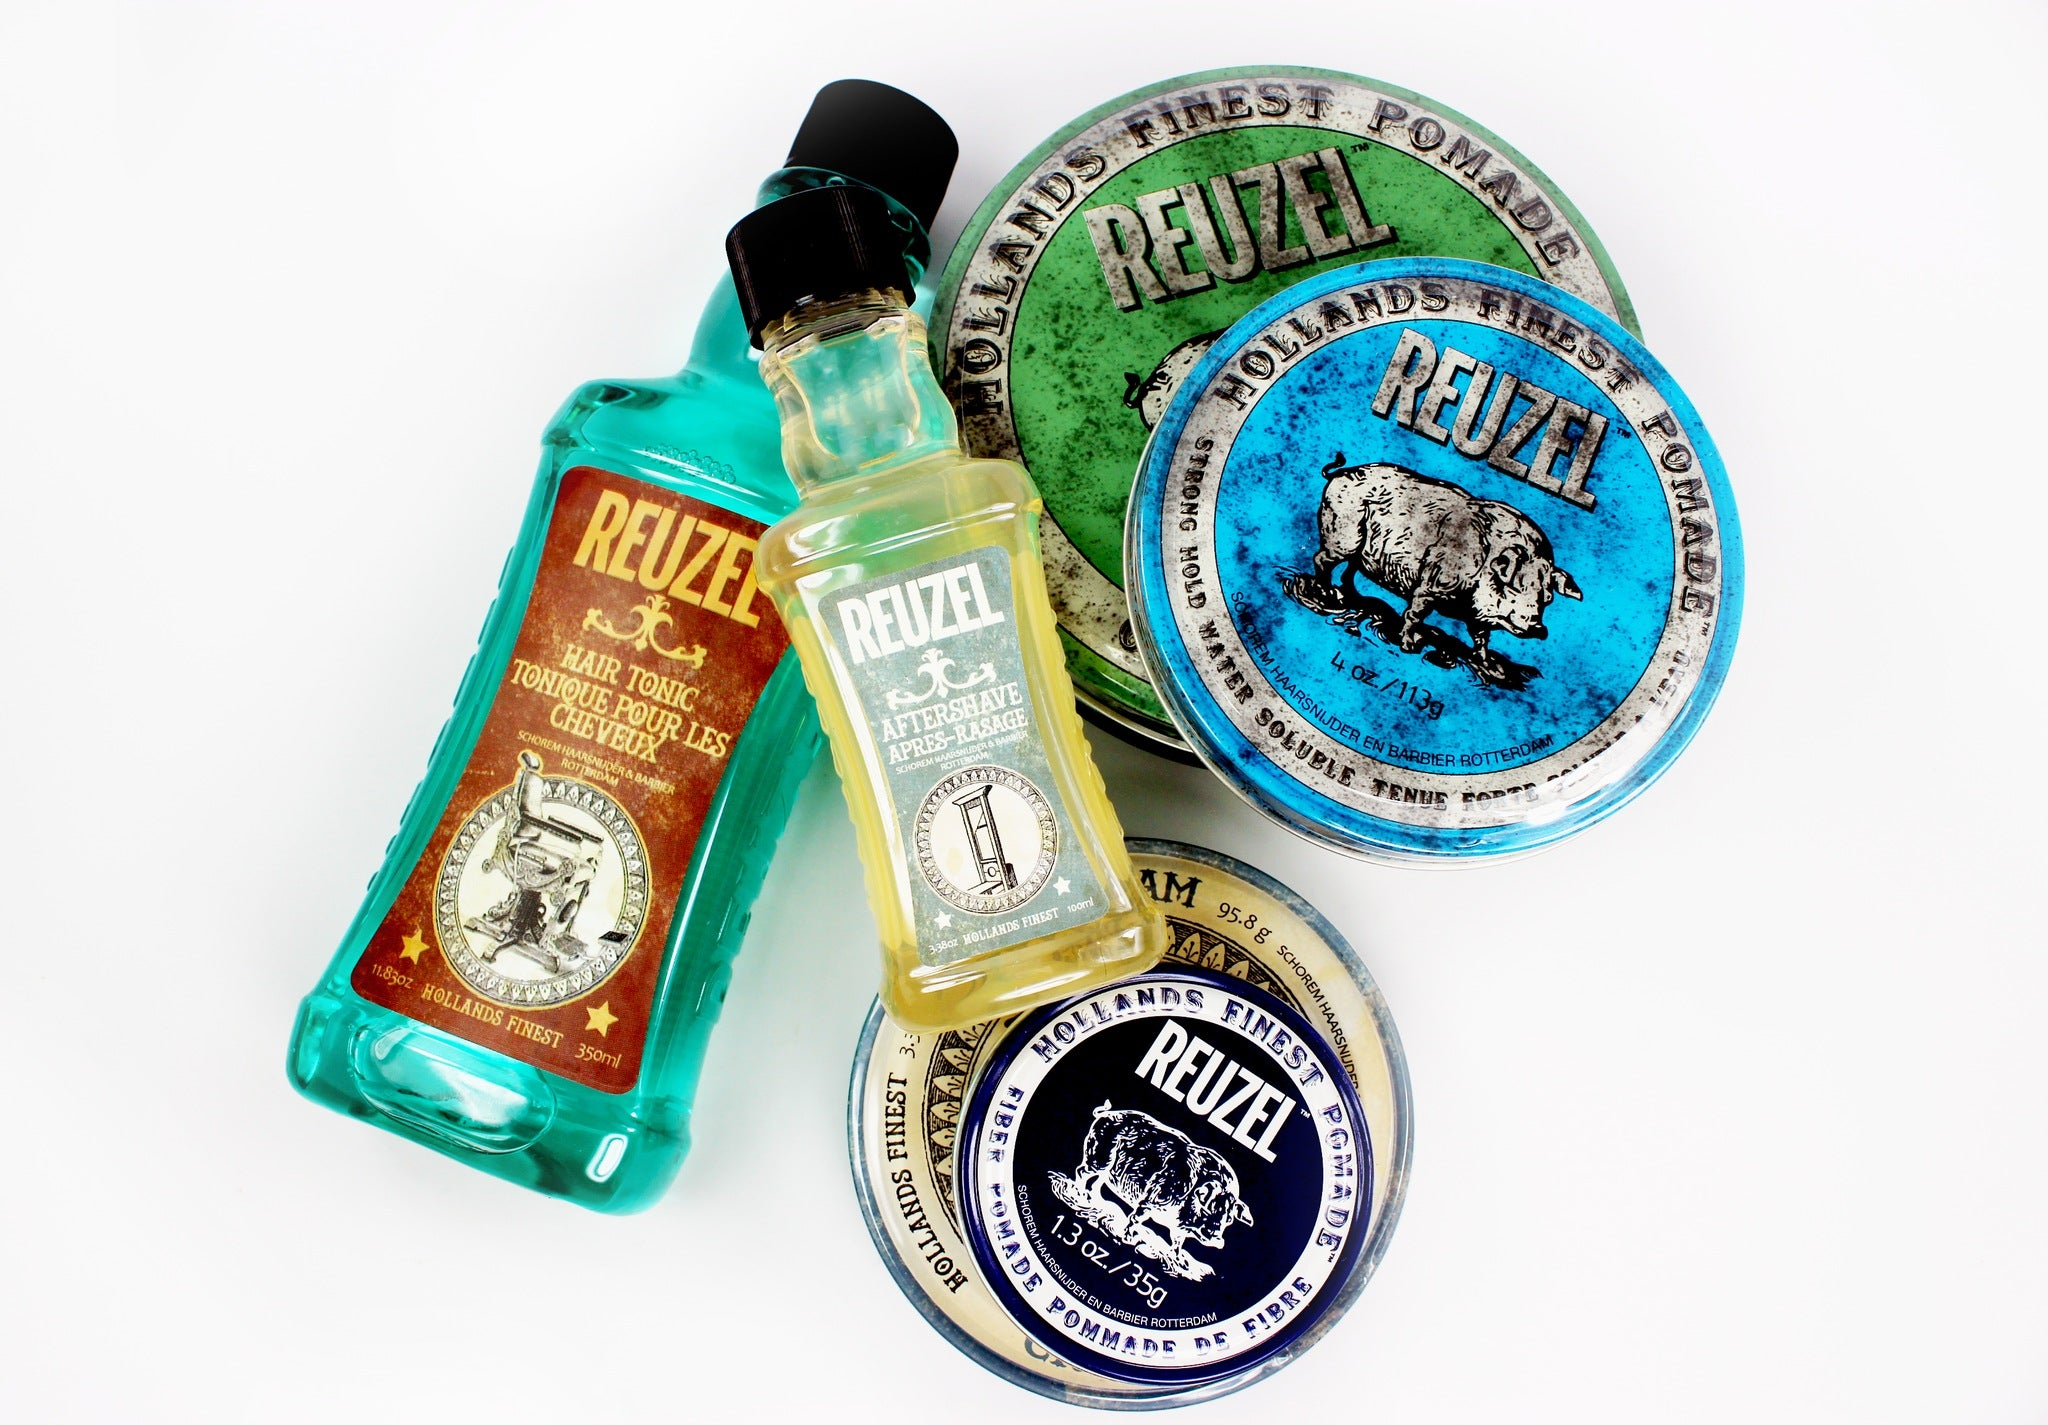 Reuzel Grooming Products